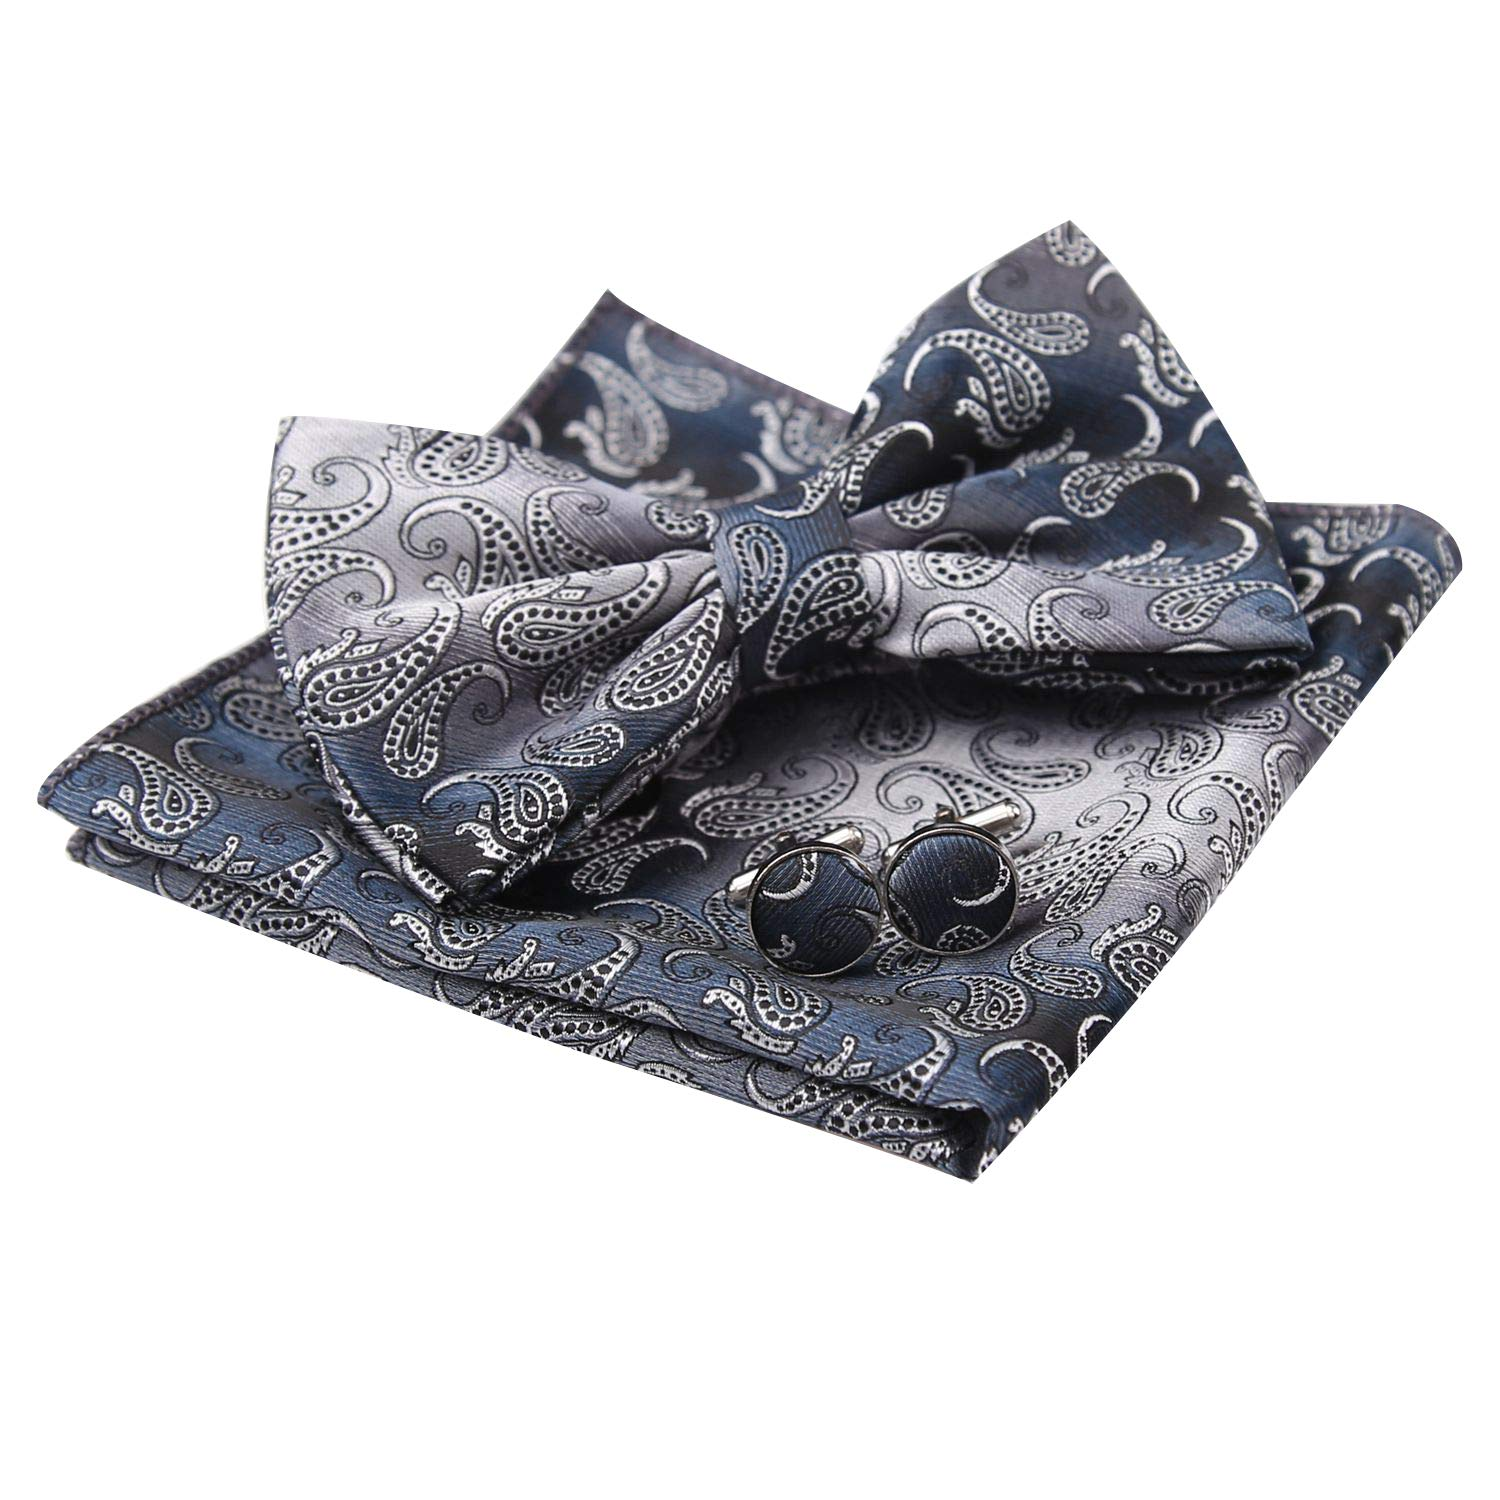 Alizeal Mens Gradient Mini Paisley Pre-tied Bow Tie, Hanky and Cufflinks Set, Gray AM015-Gray